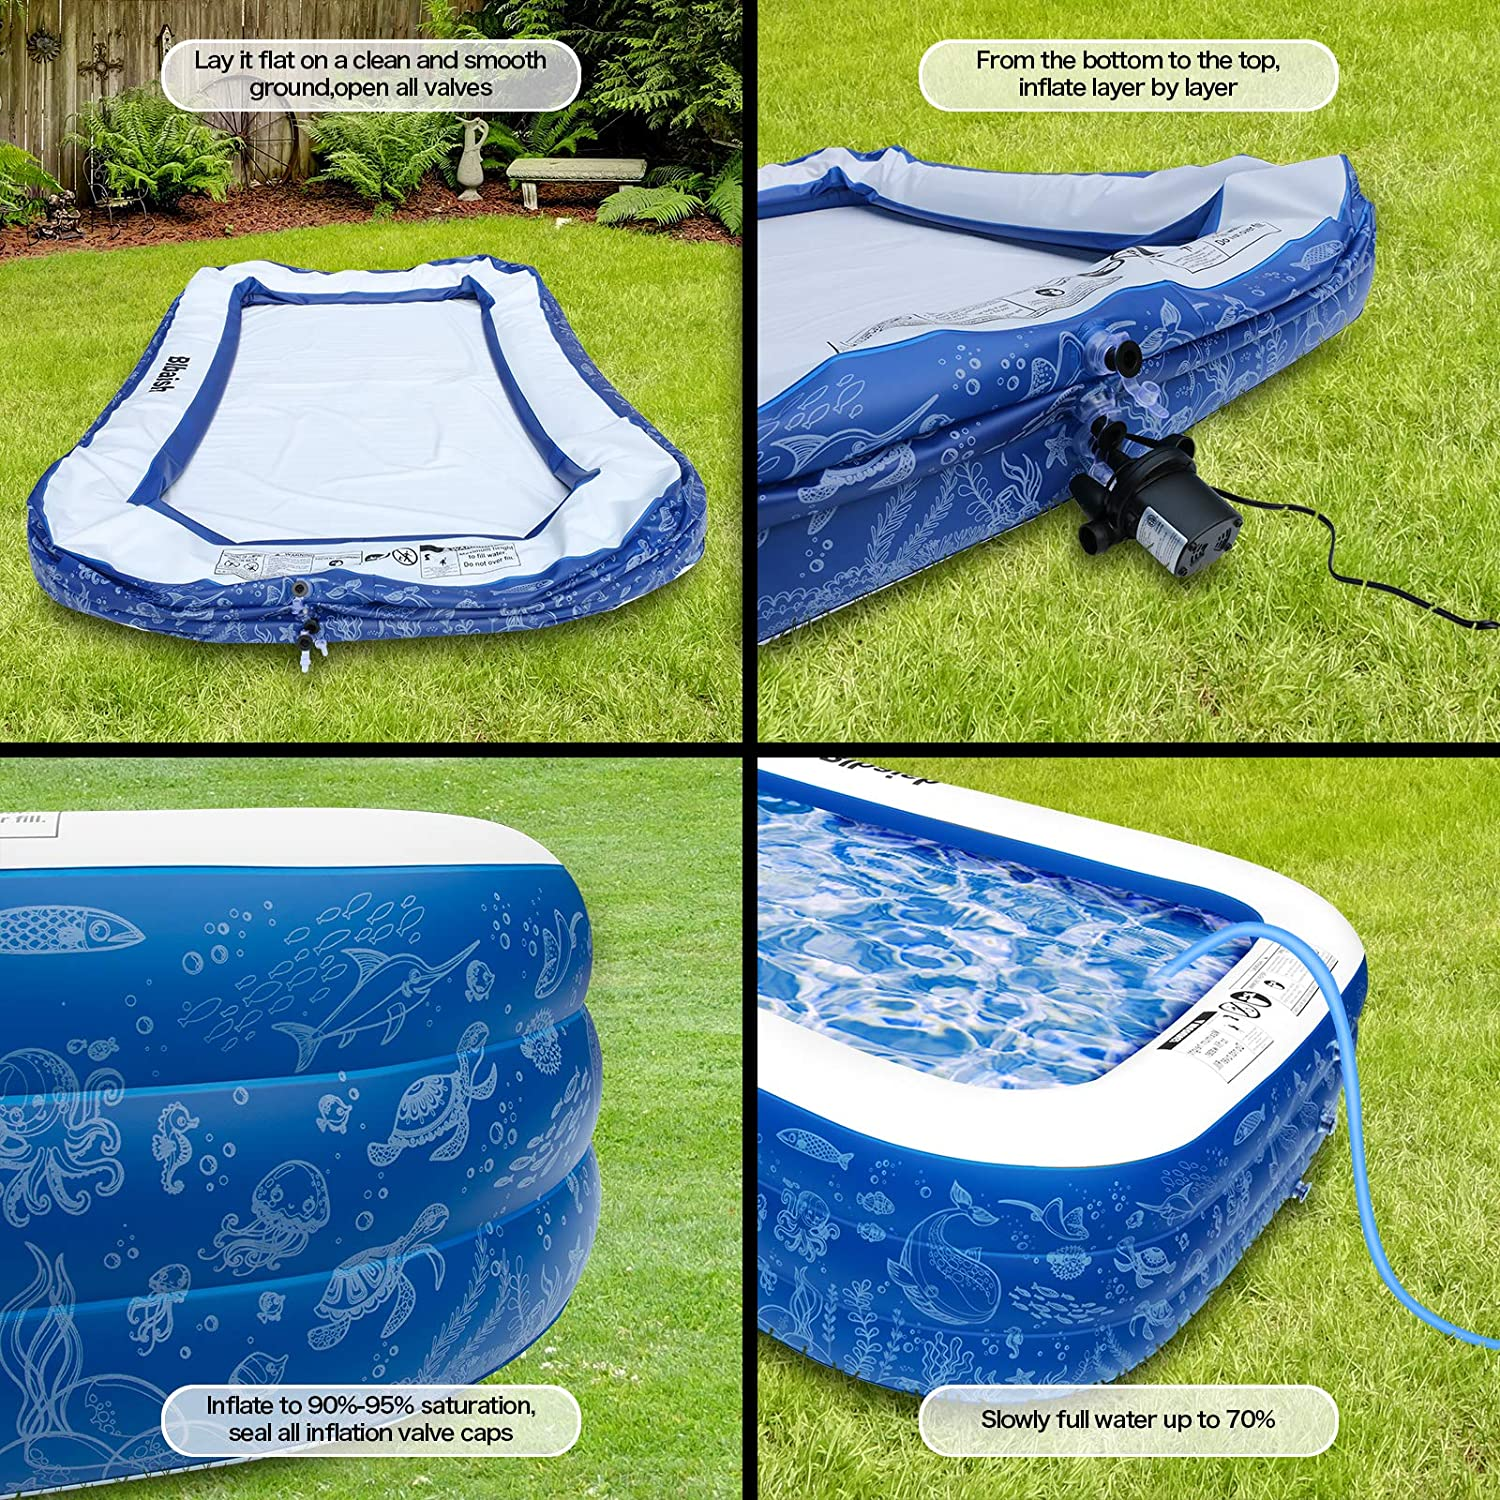 Adult Inflatable Pool for Backyard Blow Up Pool for Baby Inflatable Swimming Pool Garden Kiddie Outdoor Kids Kiddie Pool 95 X 72 X 22 Full-Sized Family Pool Ground /& Summer Water Party